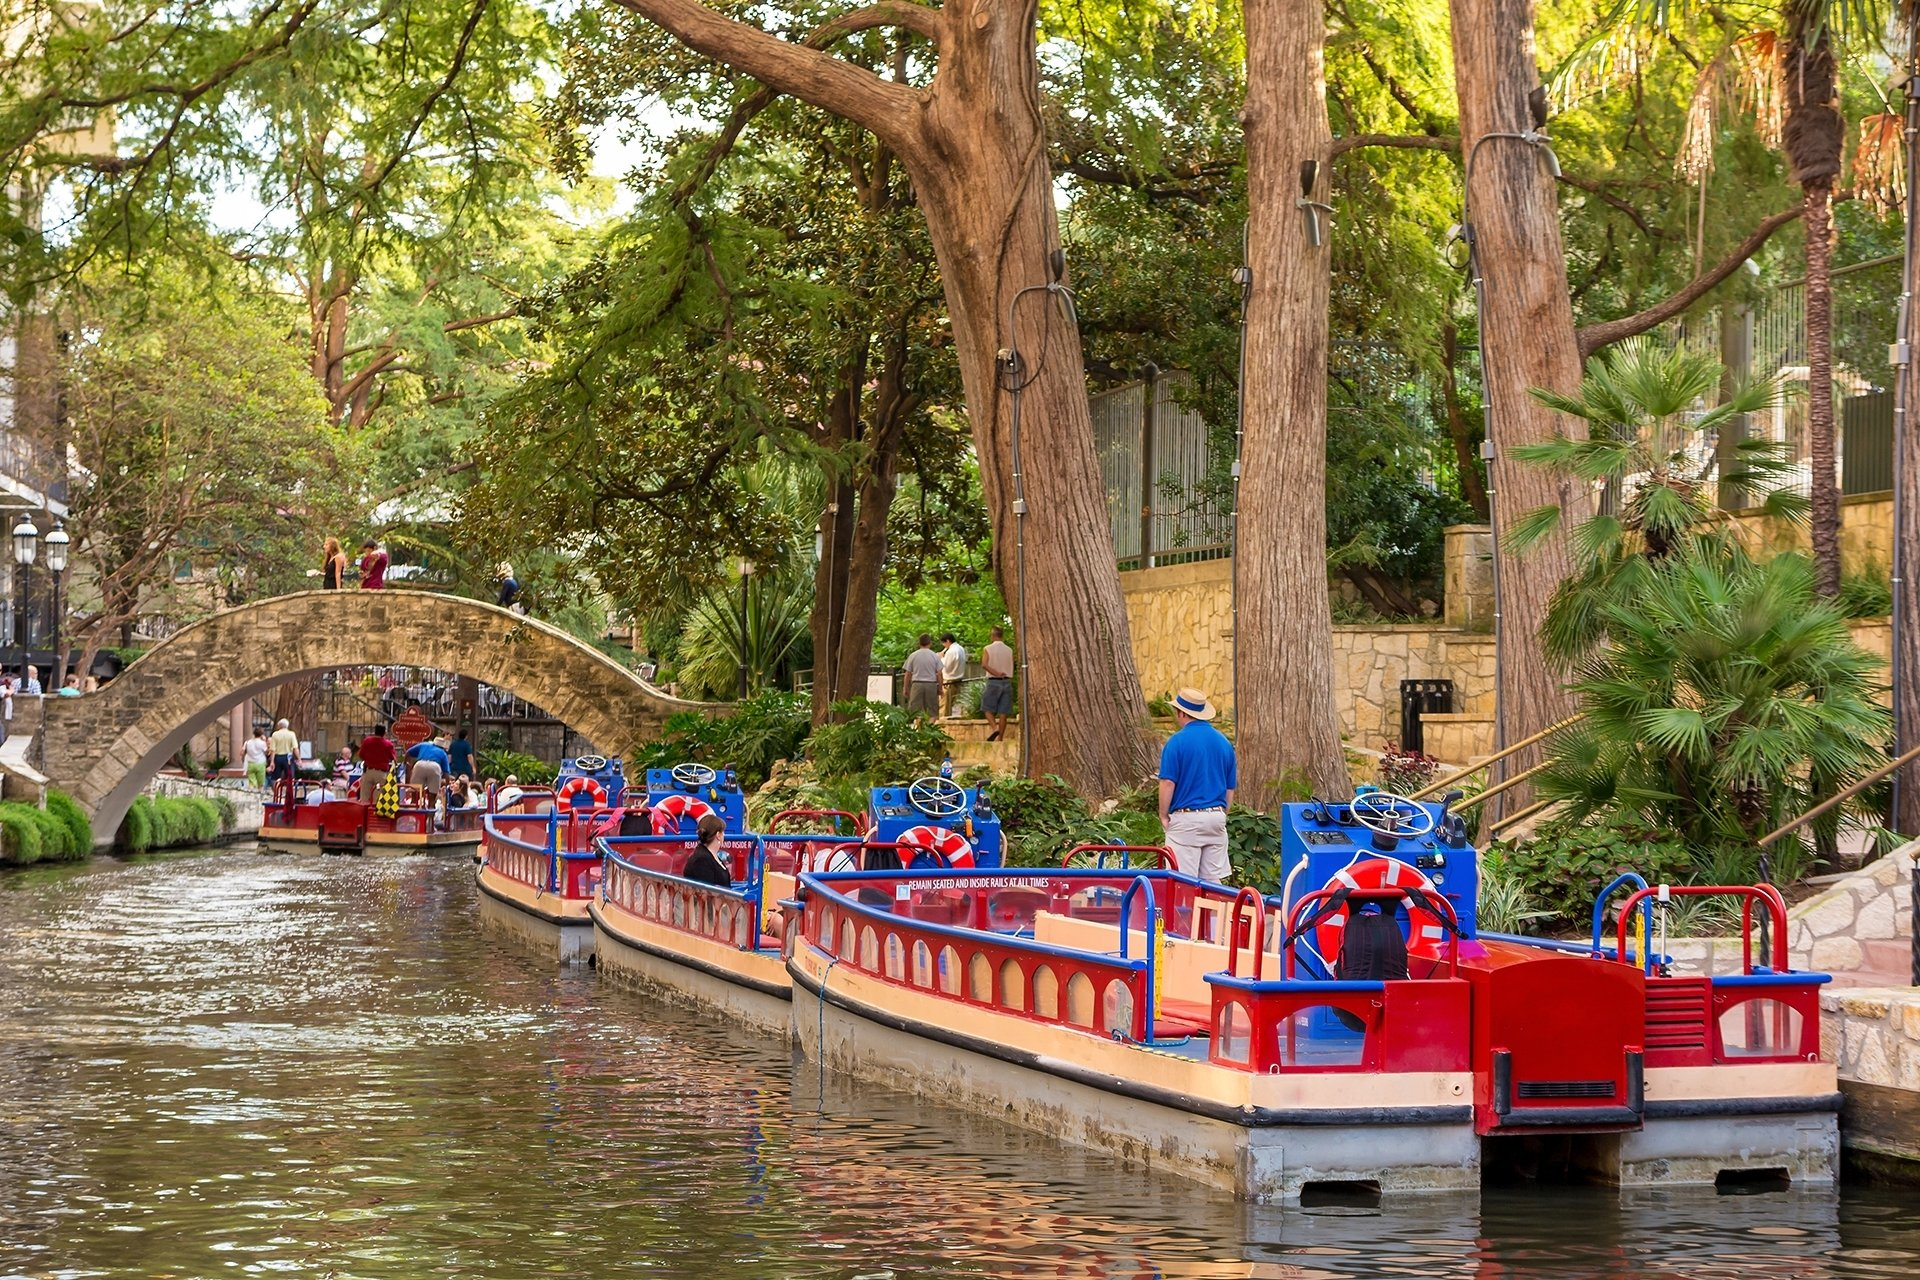 10 Gorgeous Family Vacation Ideas With Toddlers 10 best texas family getaways vacation spots family vacation critic 1